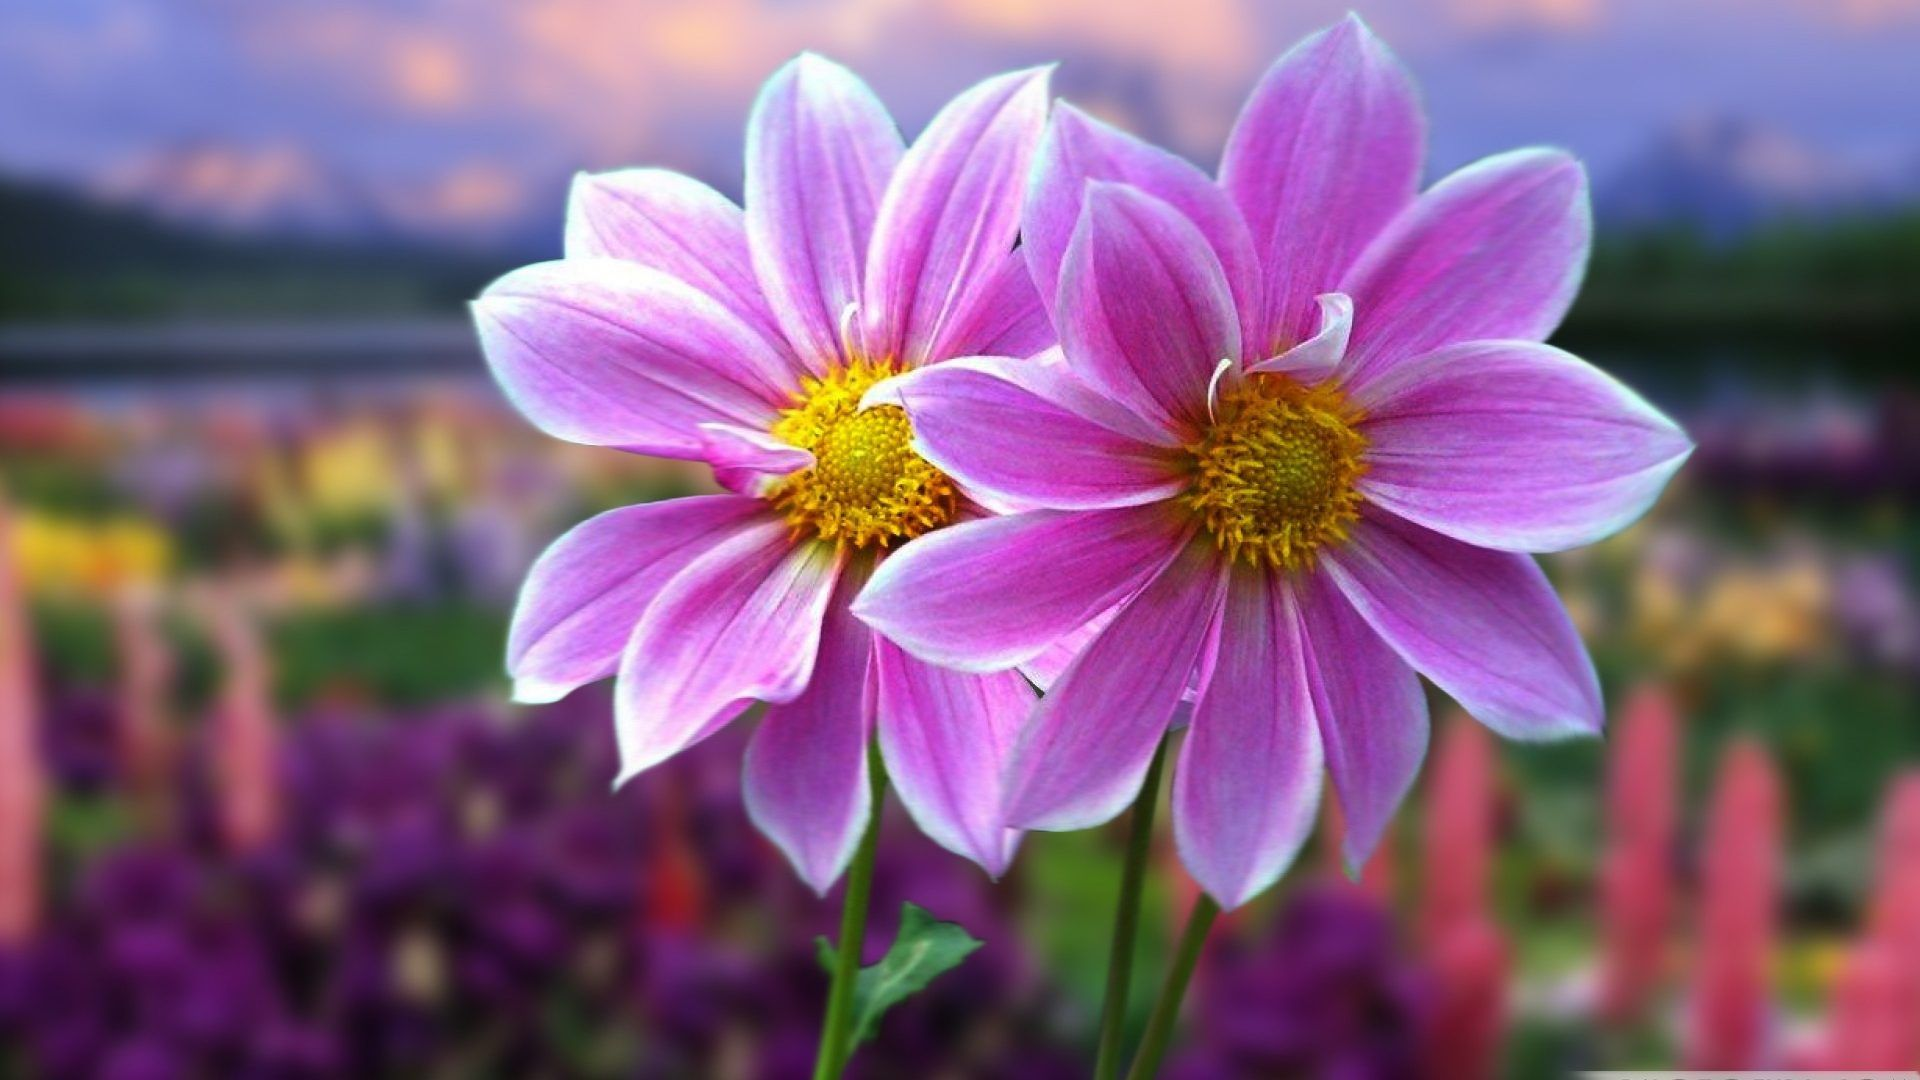 Xinature dahlias field flowers purple beautiful awesome xinature dahlias field flowers purple beautiful awesome nature mauve color flower wallpapers hd voltagebd Choice Image